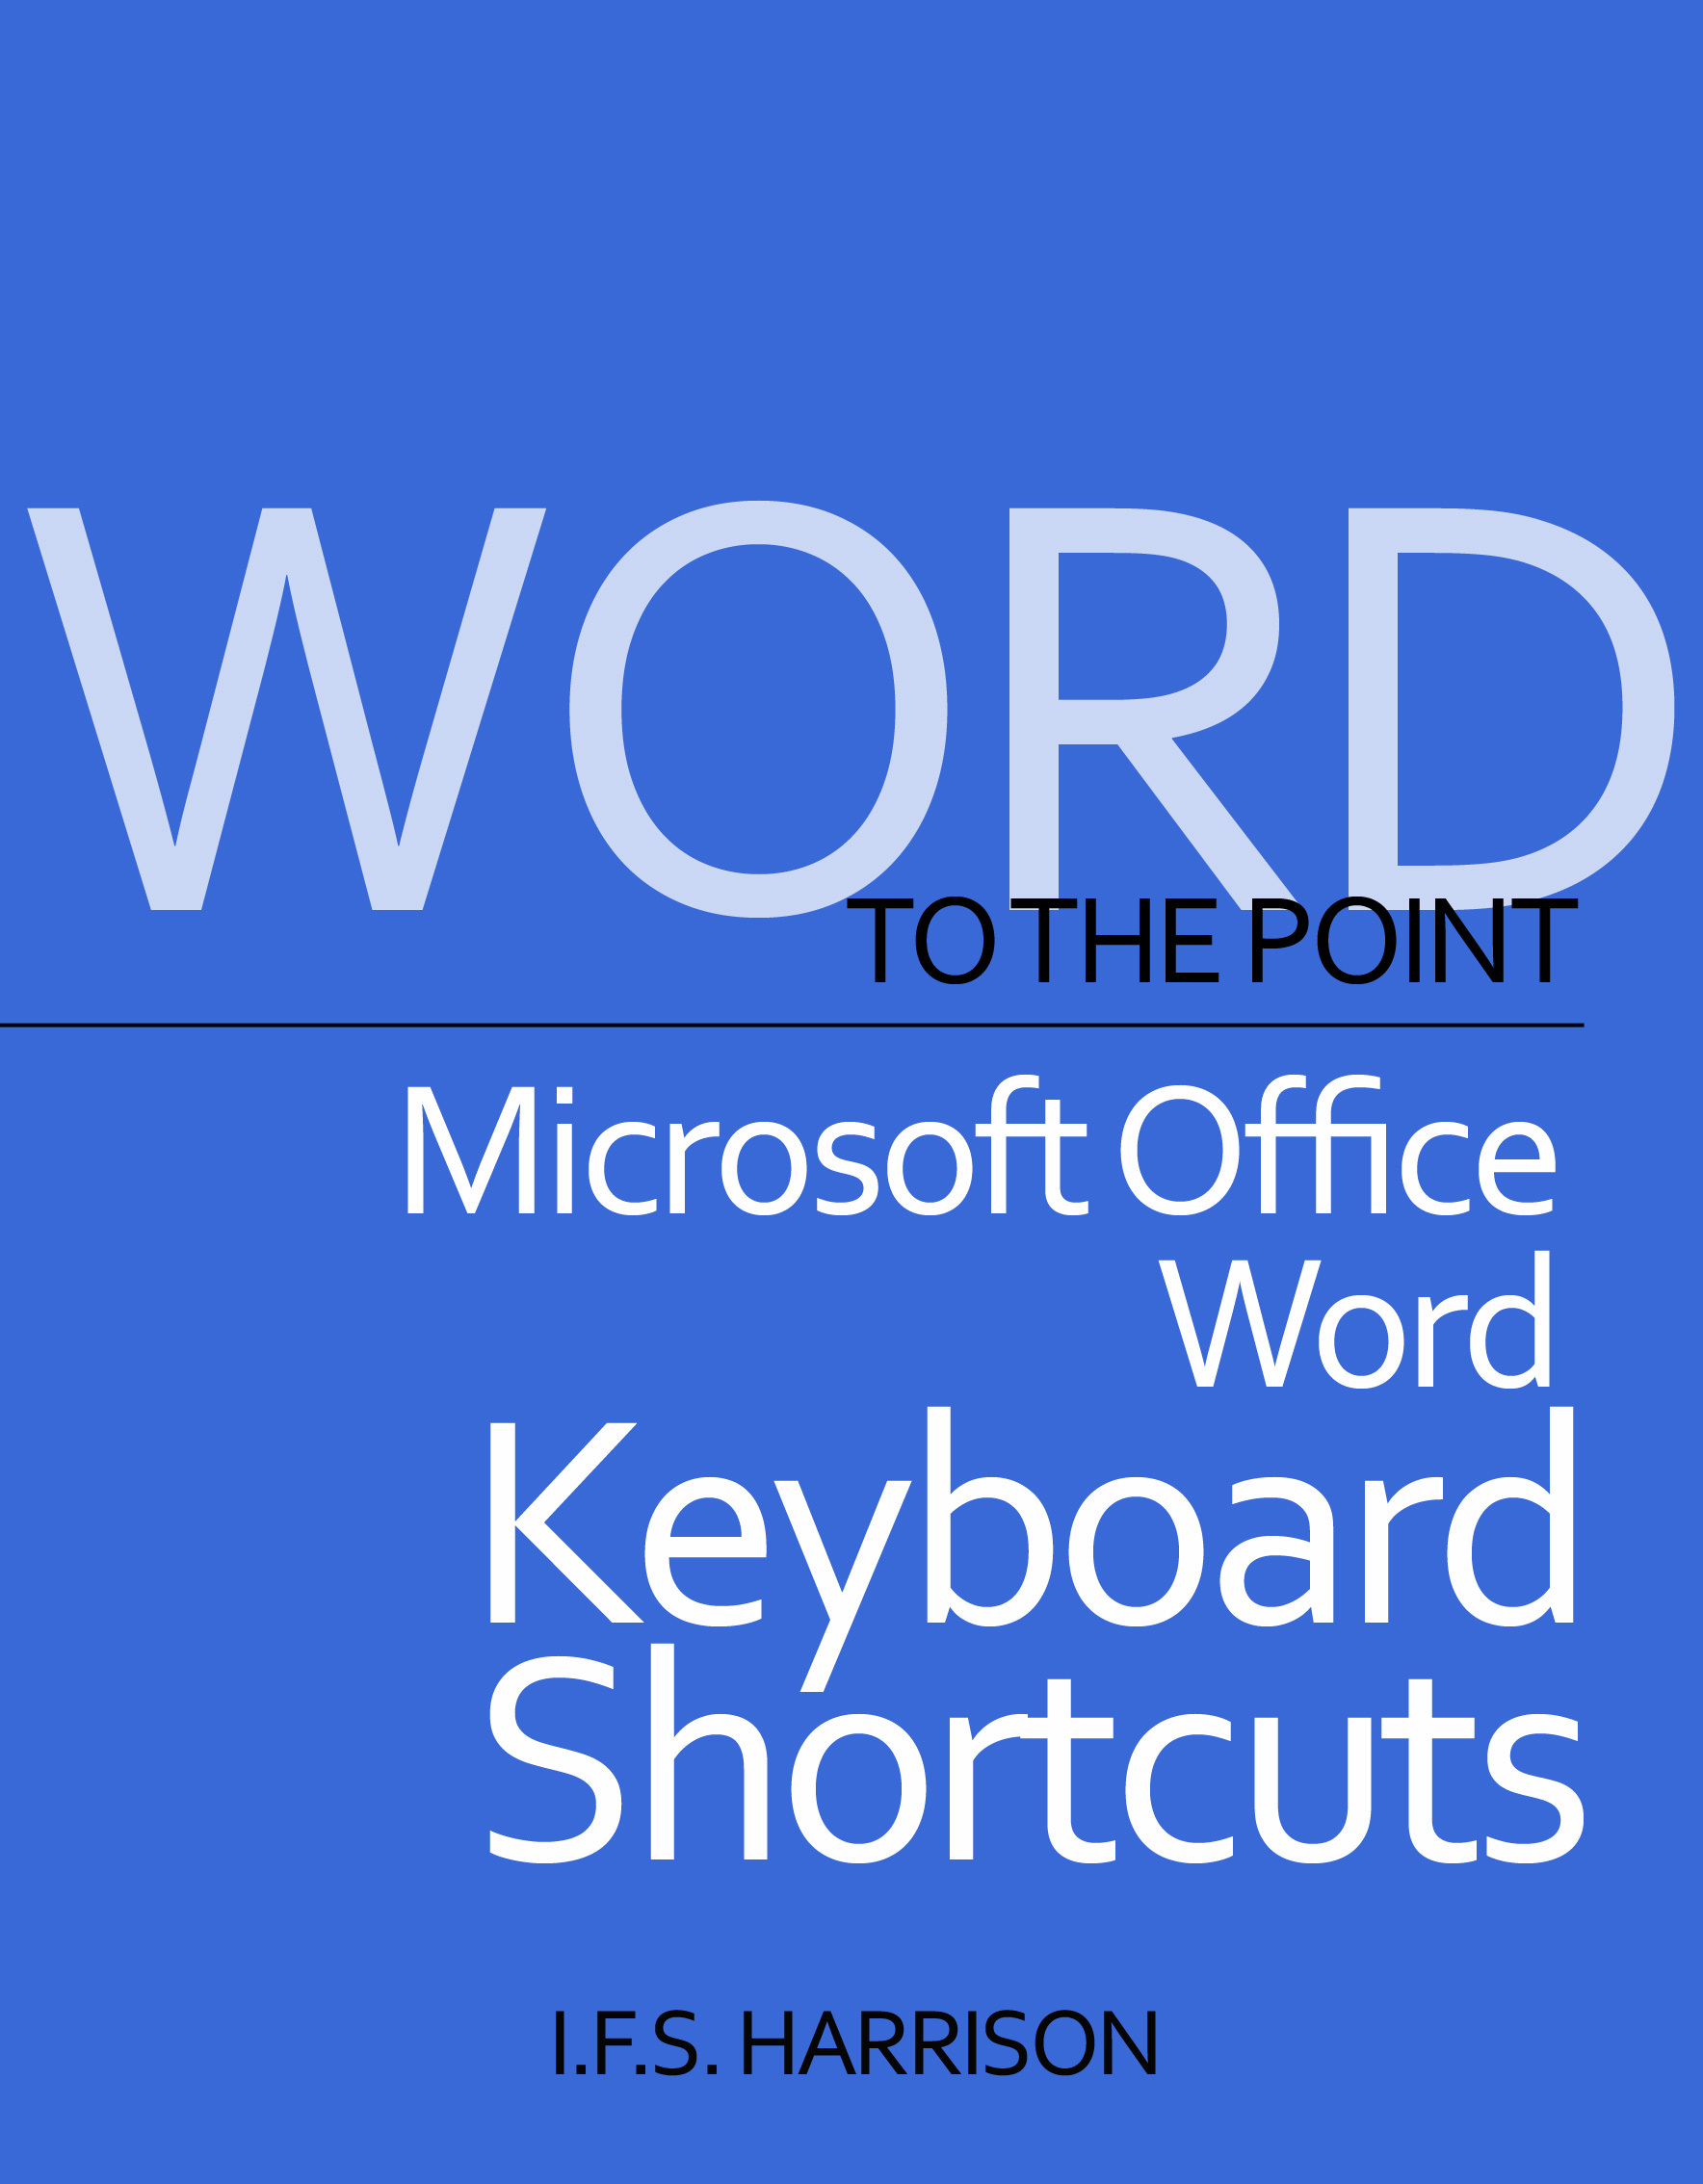 To The Point… Microsoft Office Word Keyboard Shortcuts